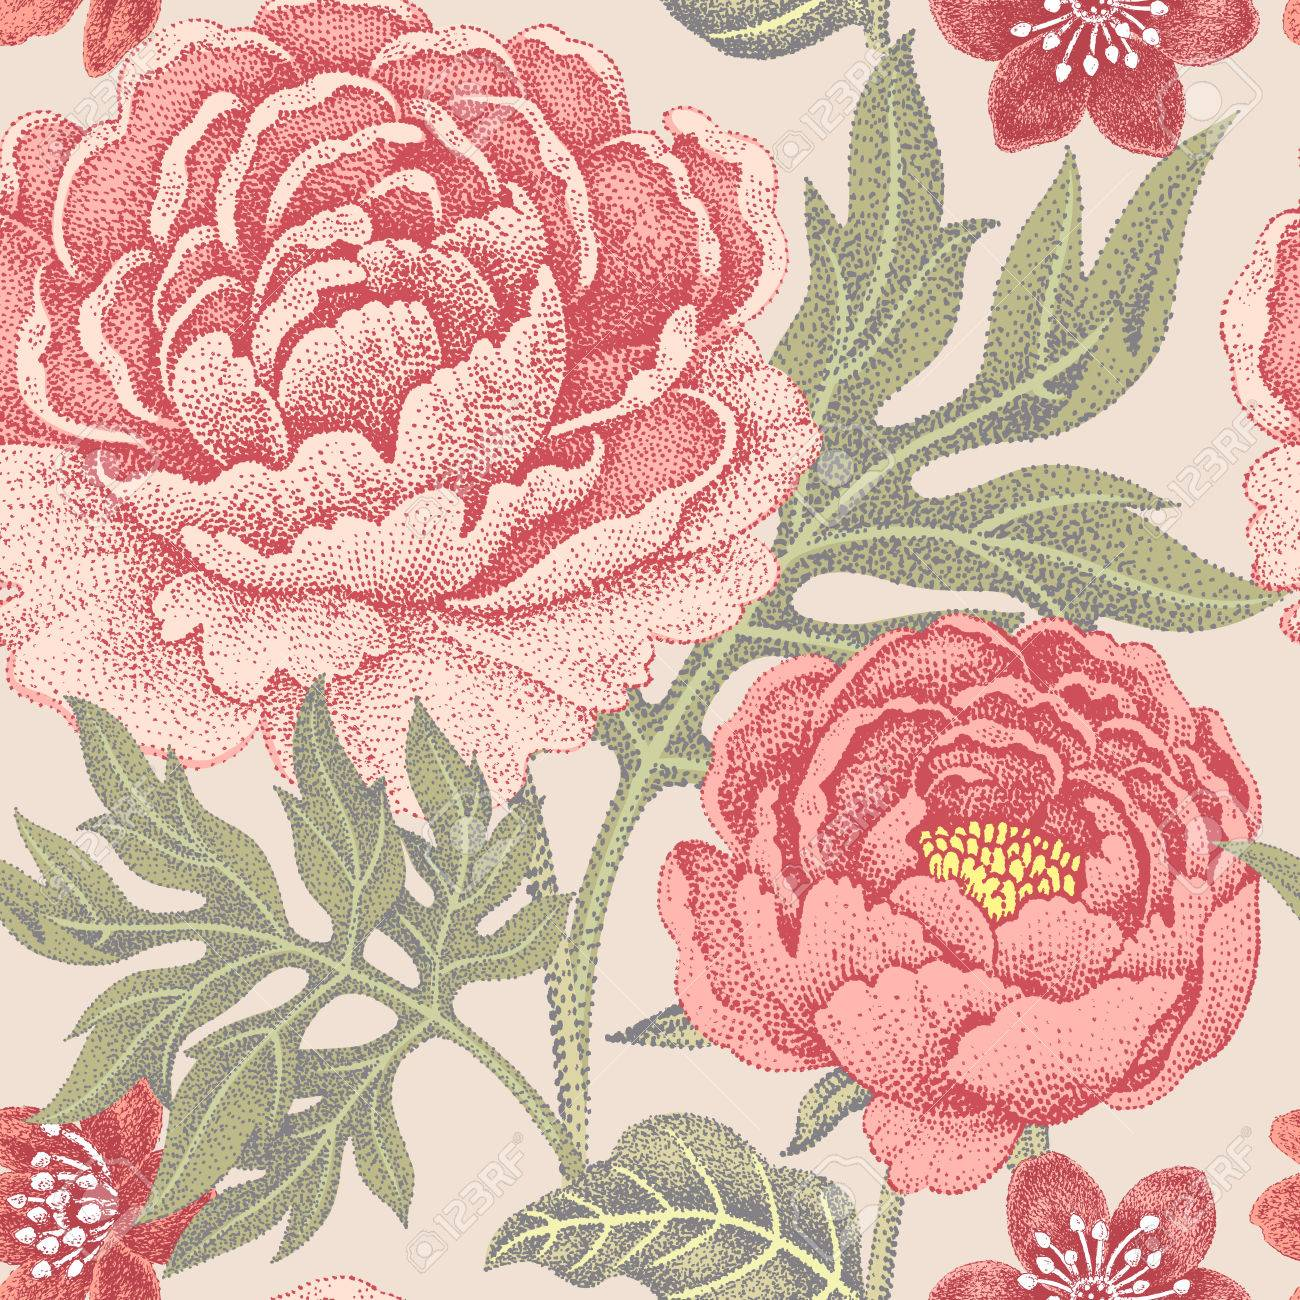 Floral seamless pattern for fabrics, textiles, wallpaper, paper. Vector. Garden flowers peonies. Design Victorian style. - 55290981